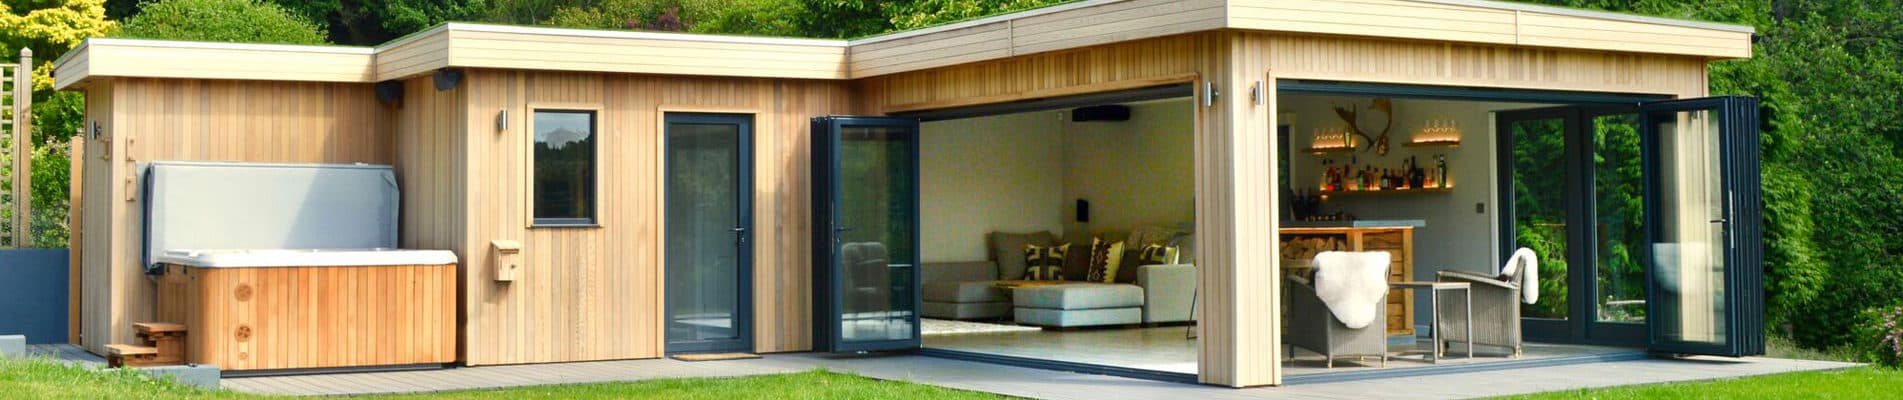 Exceptionnel Make Memories All Year Round With Our Garden Rooms And Gazebos